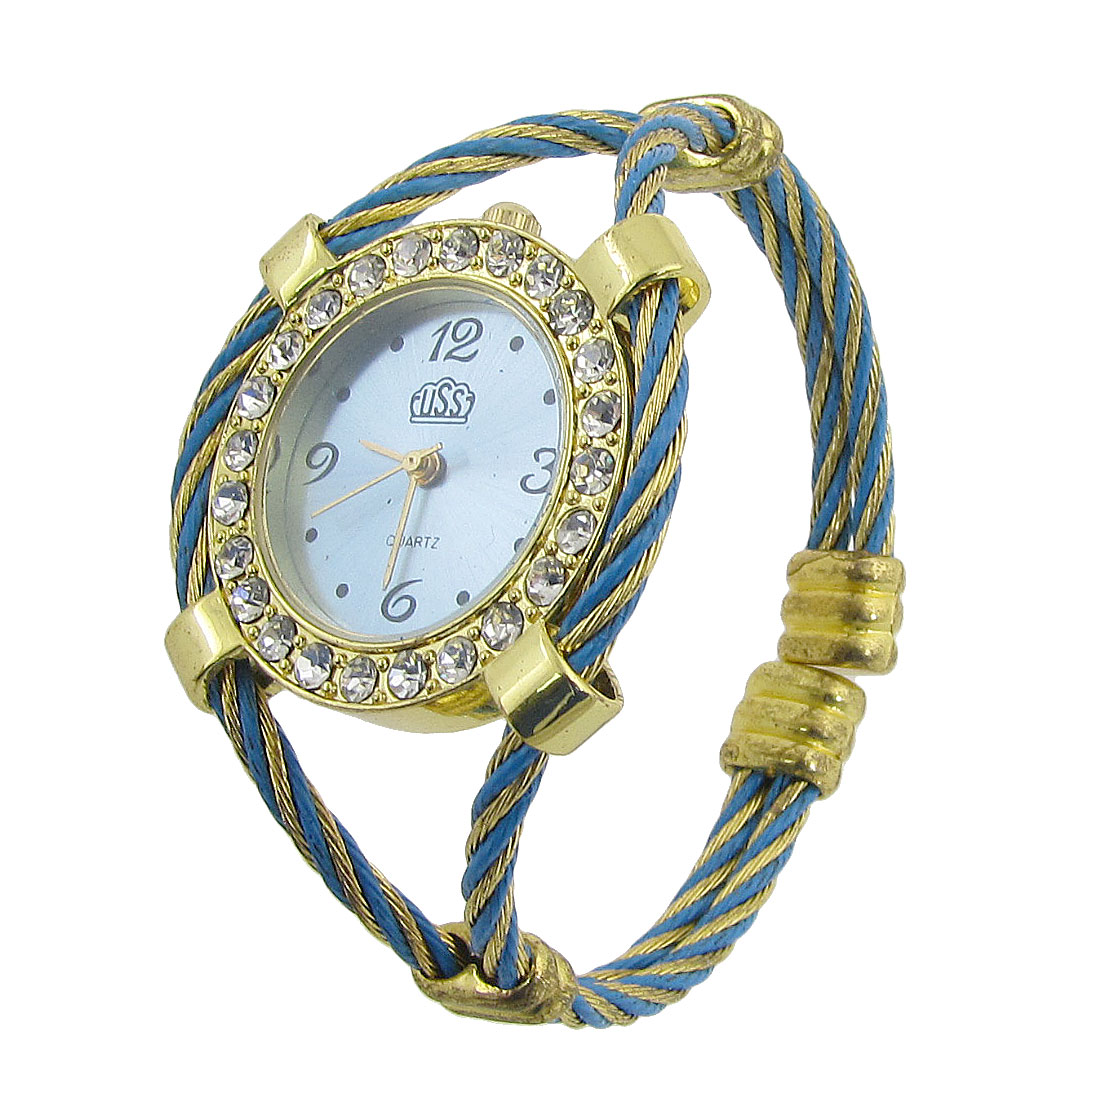 Rhinestone Decor Twist Band Round Dial Quartz Bracelet Watch Gold Tone for Woman